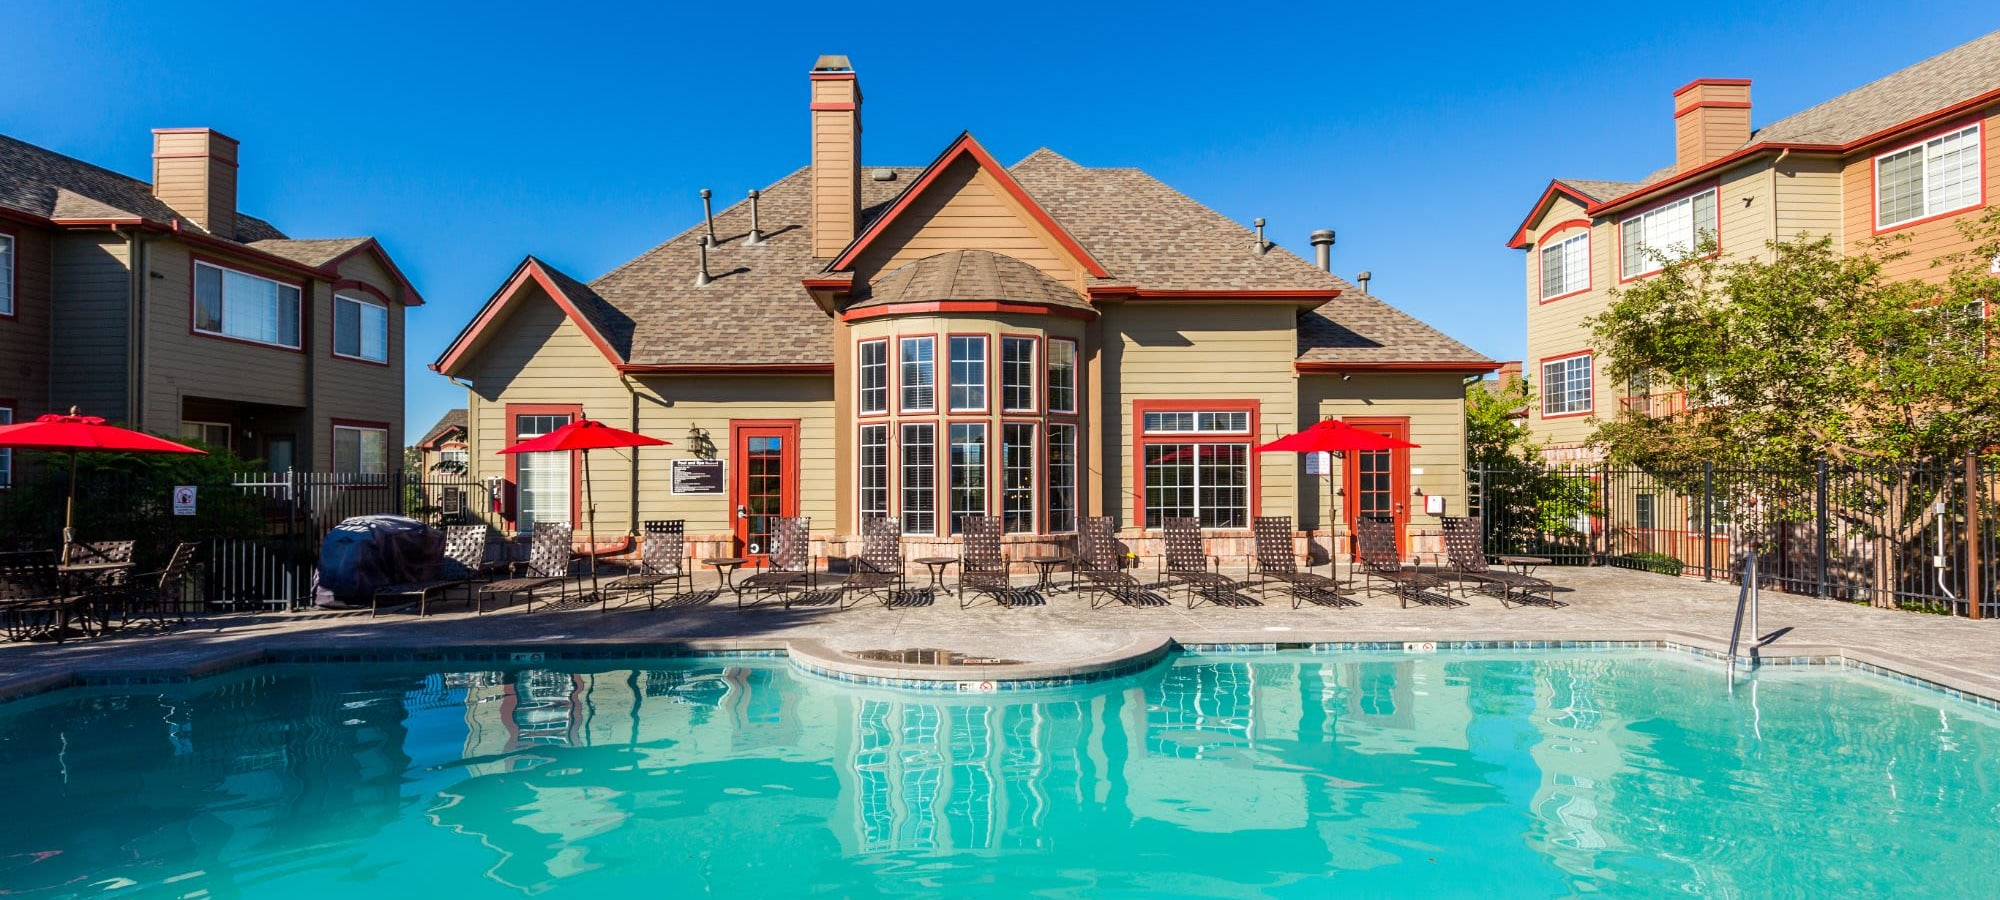 Amenities at The Links at Plum Creek in Castle Rock, Colorado